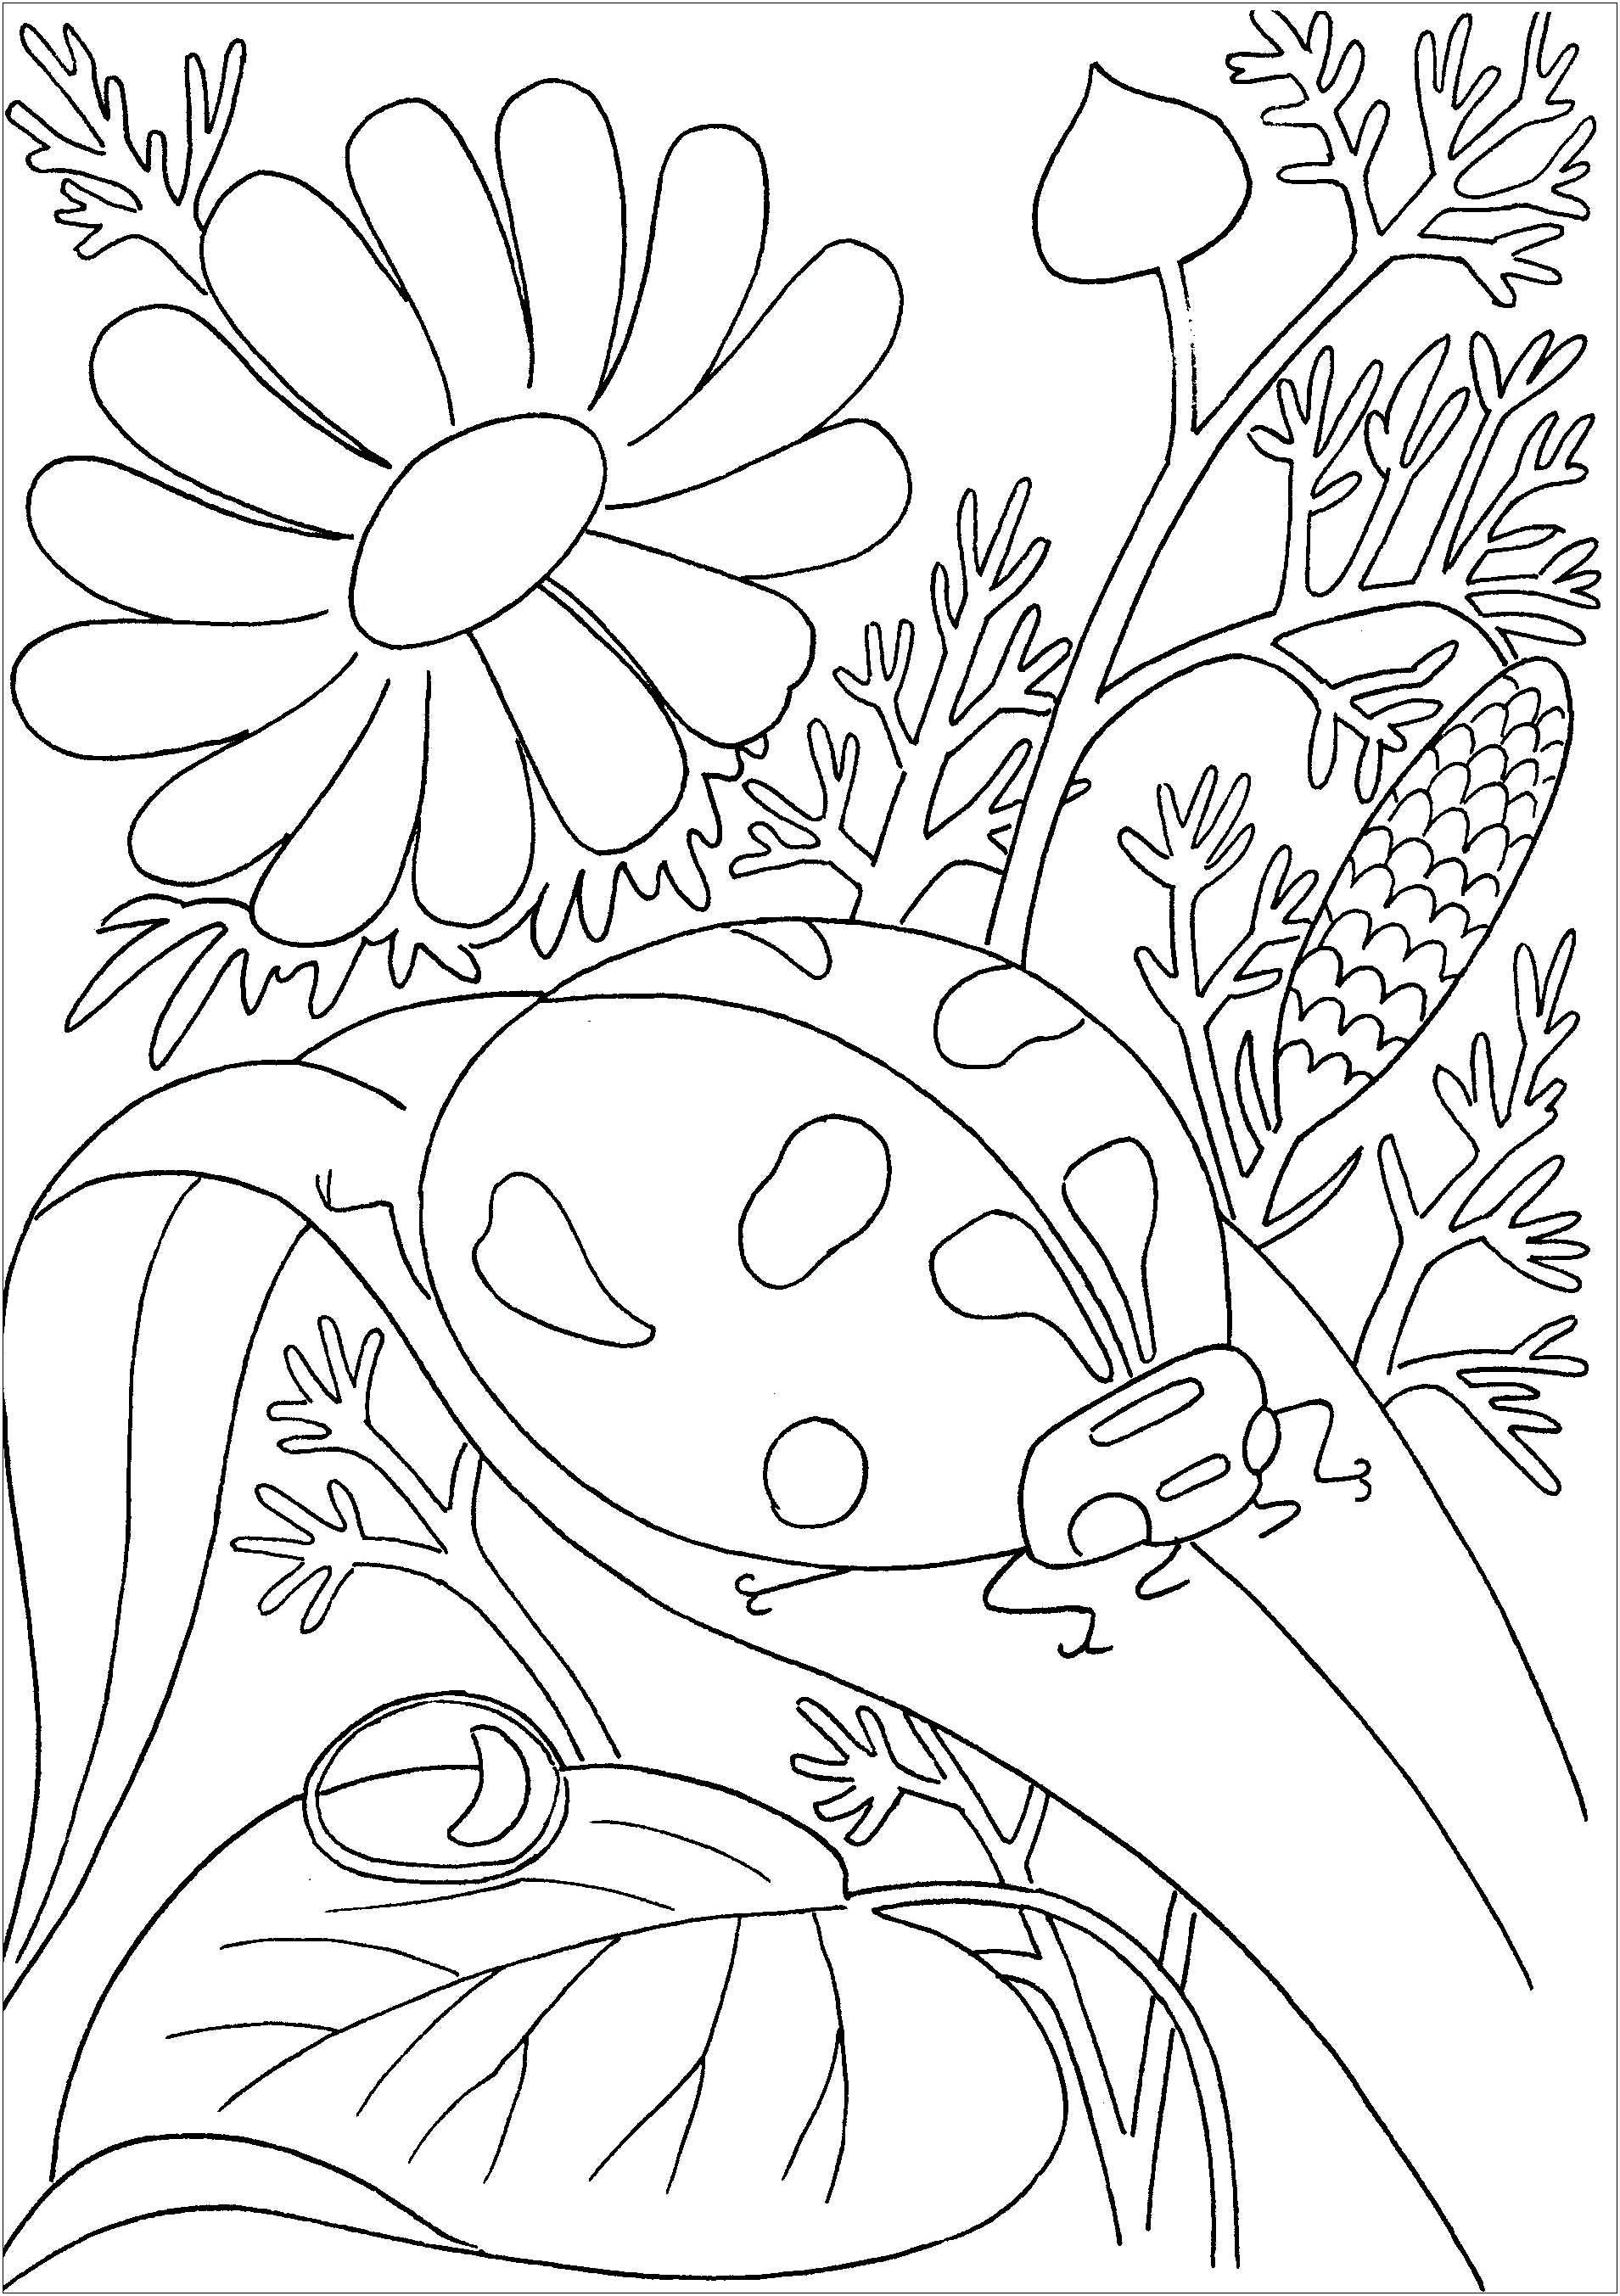 insects coloring sheets bugs coloring pages preschool at getcoloringscom free coloring sheets insects